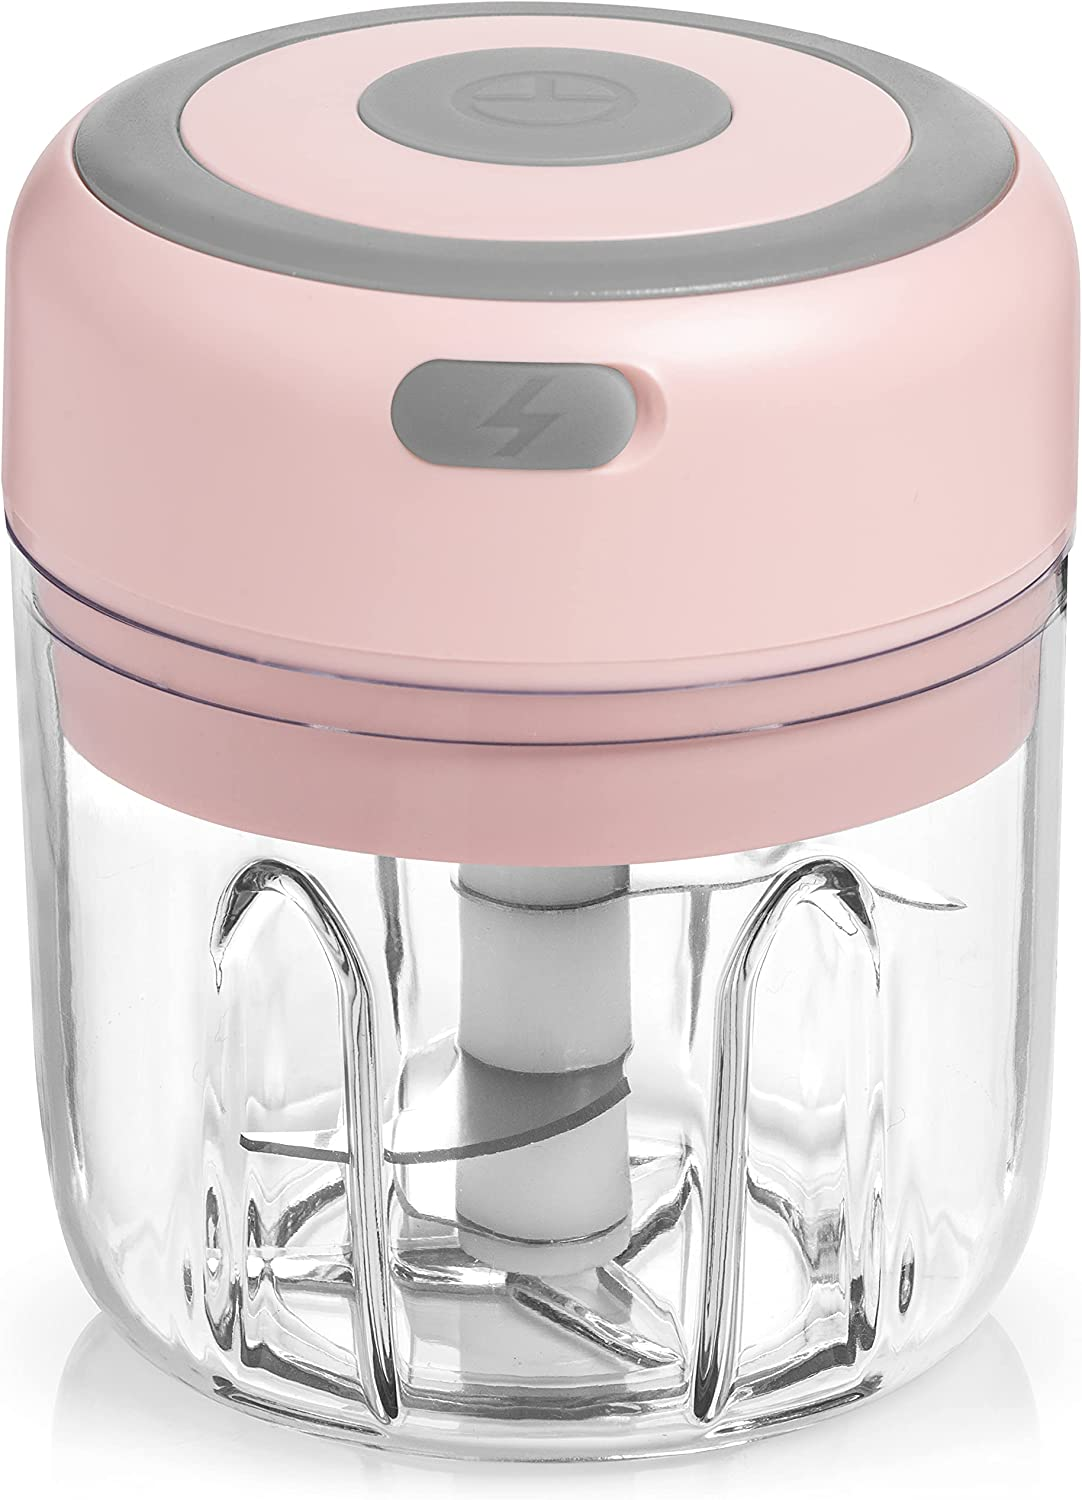 Electric Garlic Chopper - Mini Food Chopper (250 ML) - Kitchen Mini Garlic Chopper, Mincer, Crusher, Grinder, Slicer - Hand Kitchen Dicers for Ginger, Onion, Chili, Spices, Veggies